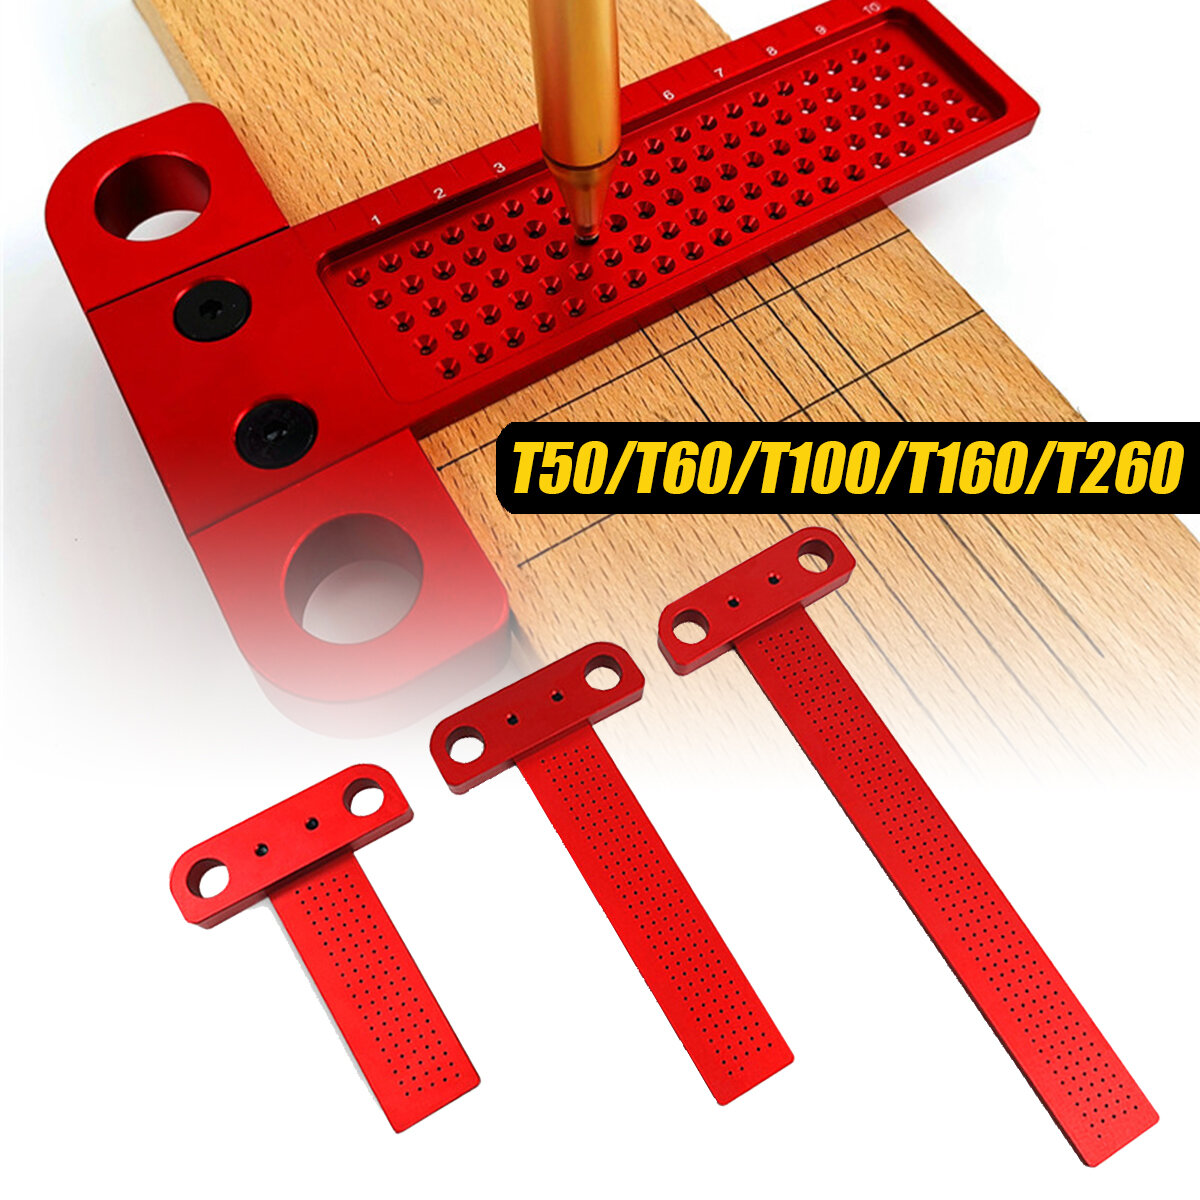 T50/T60/T100/T160/T260 T-type Ruler Hole Scribing Measuring Woodworking Marking Scriber